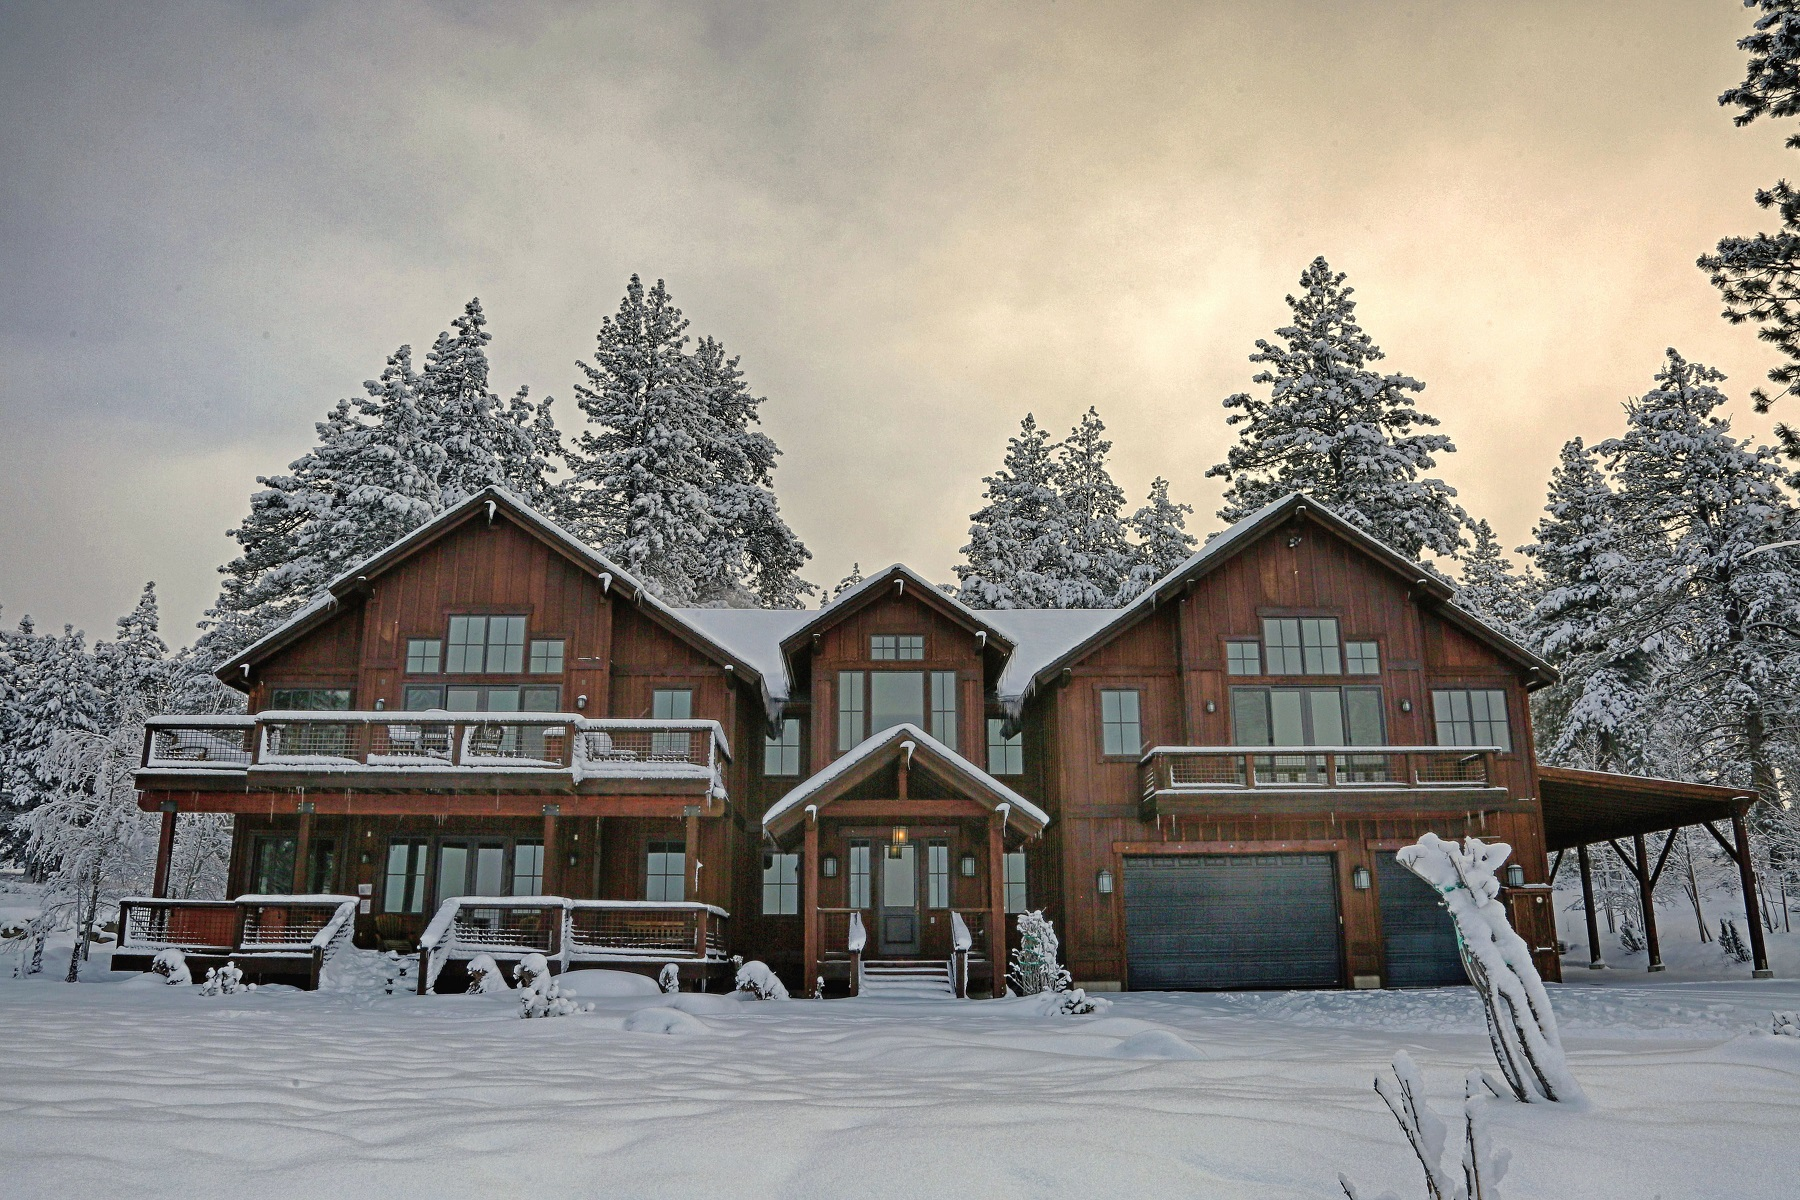 Single Family Home for Sale at 12568 Union Mills Road Truckee, California 96161 United States